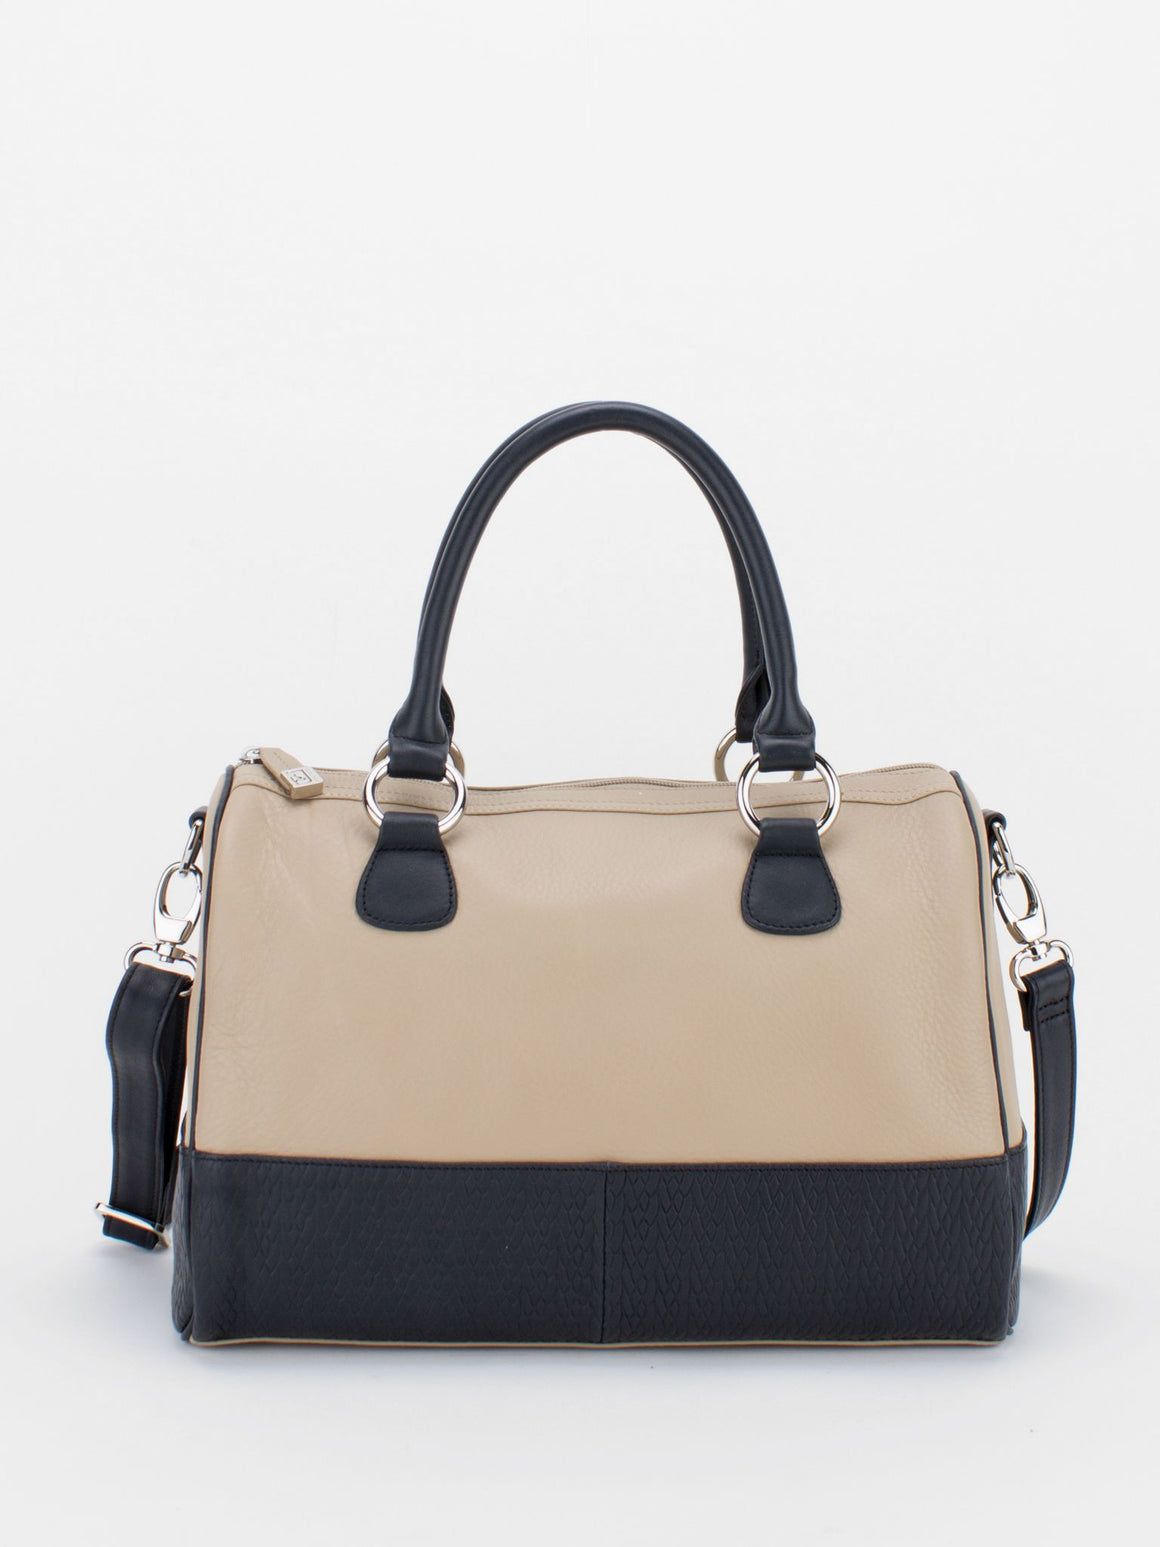 MAUREEN Natural Grain Colour Block Satchel - Beige/Black